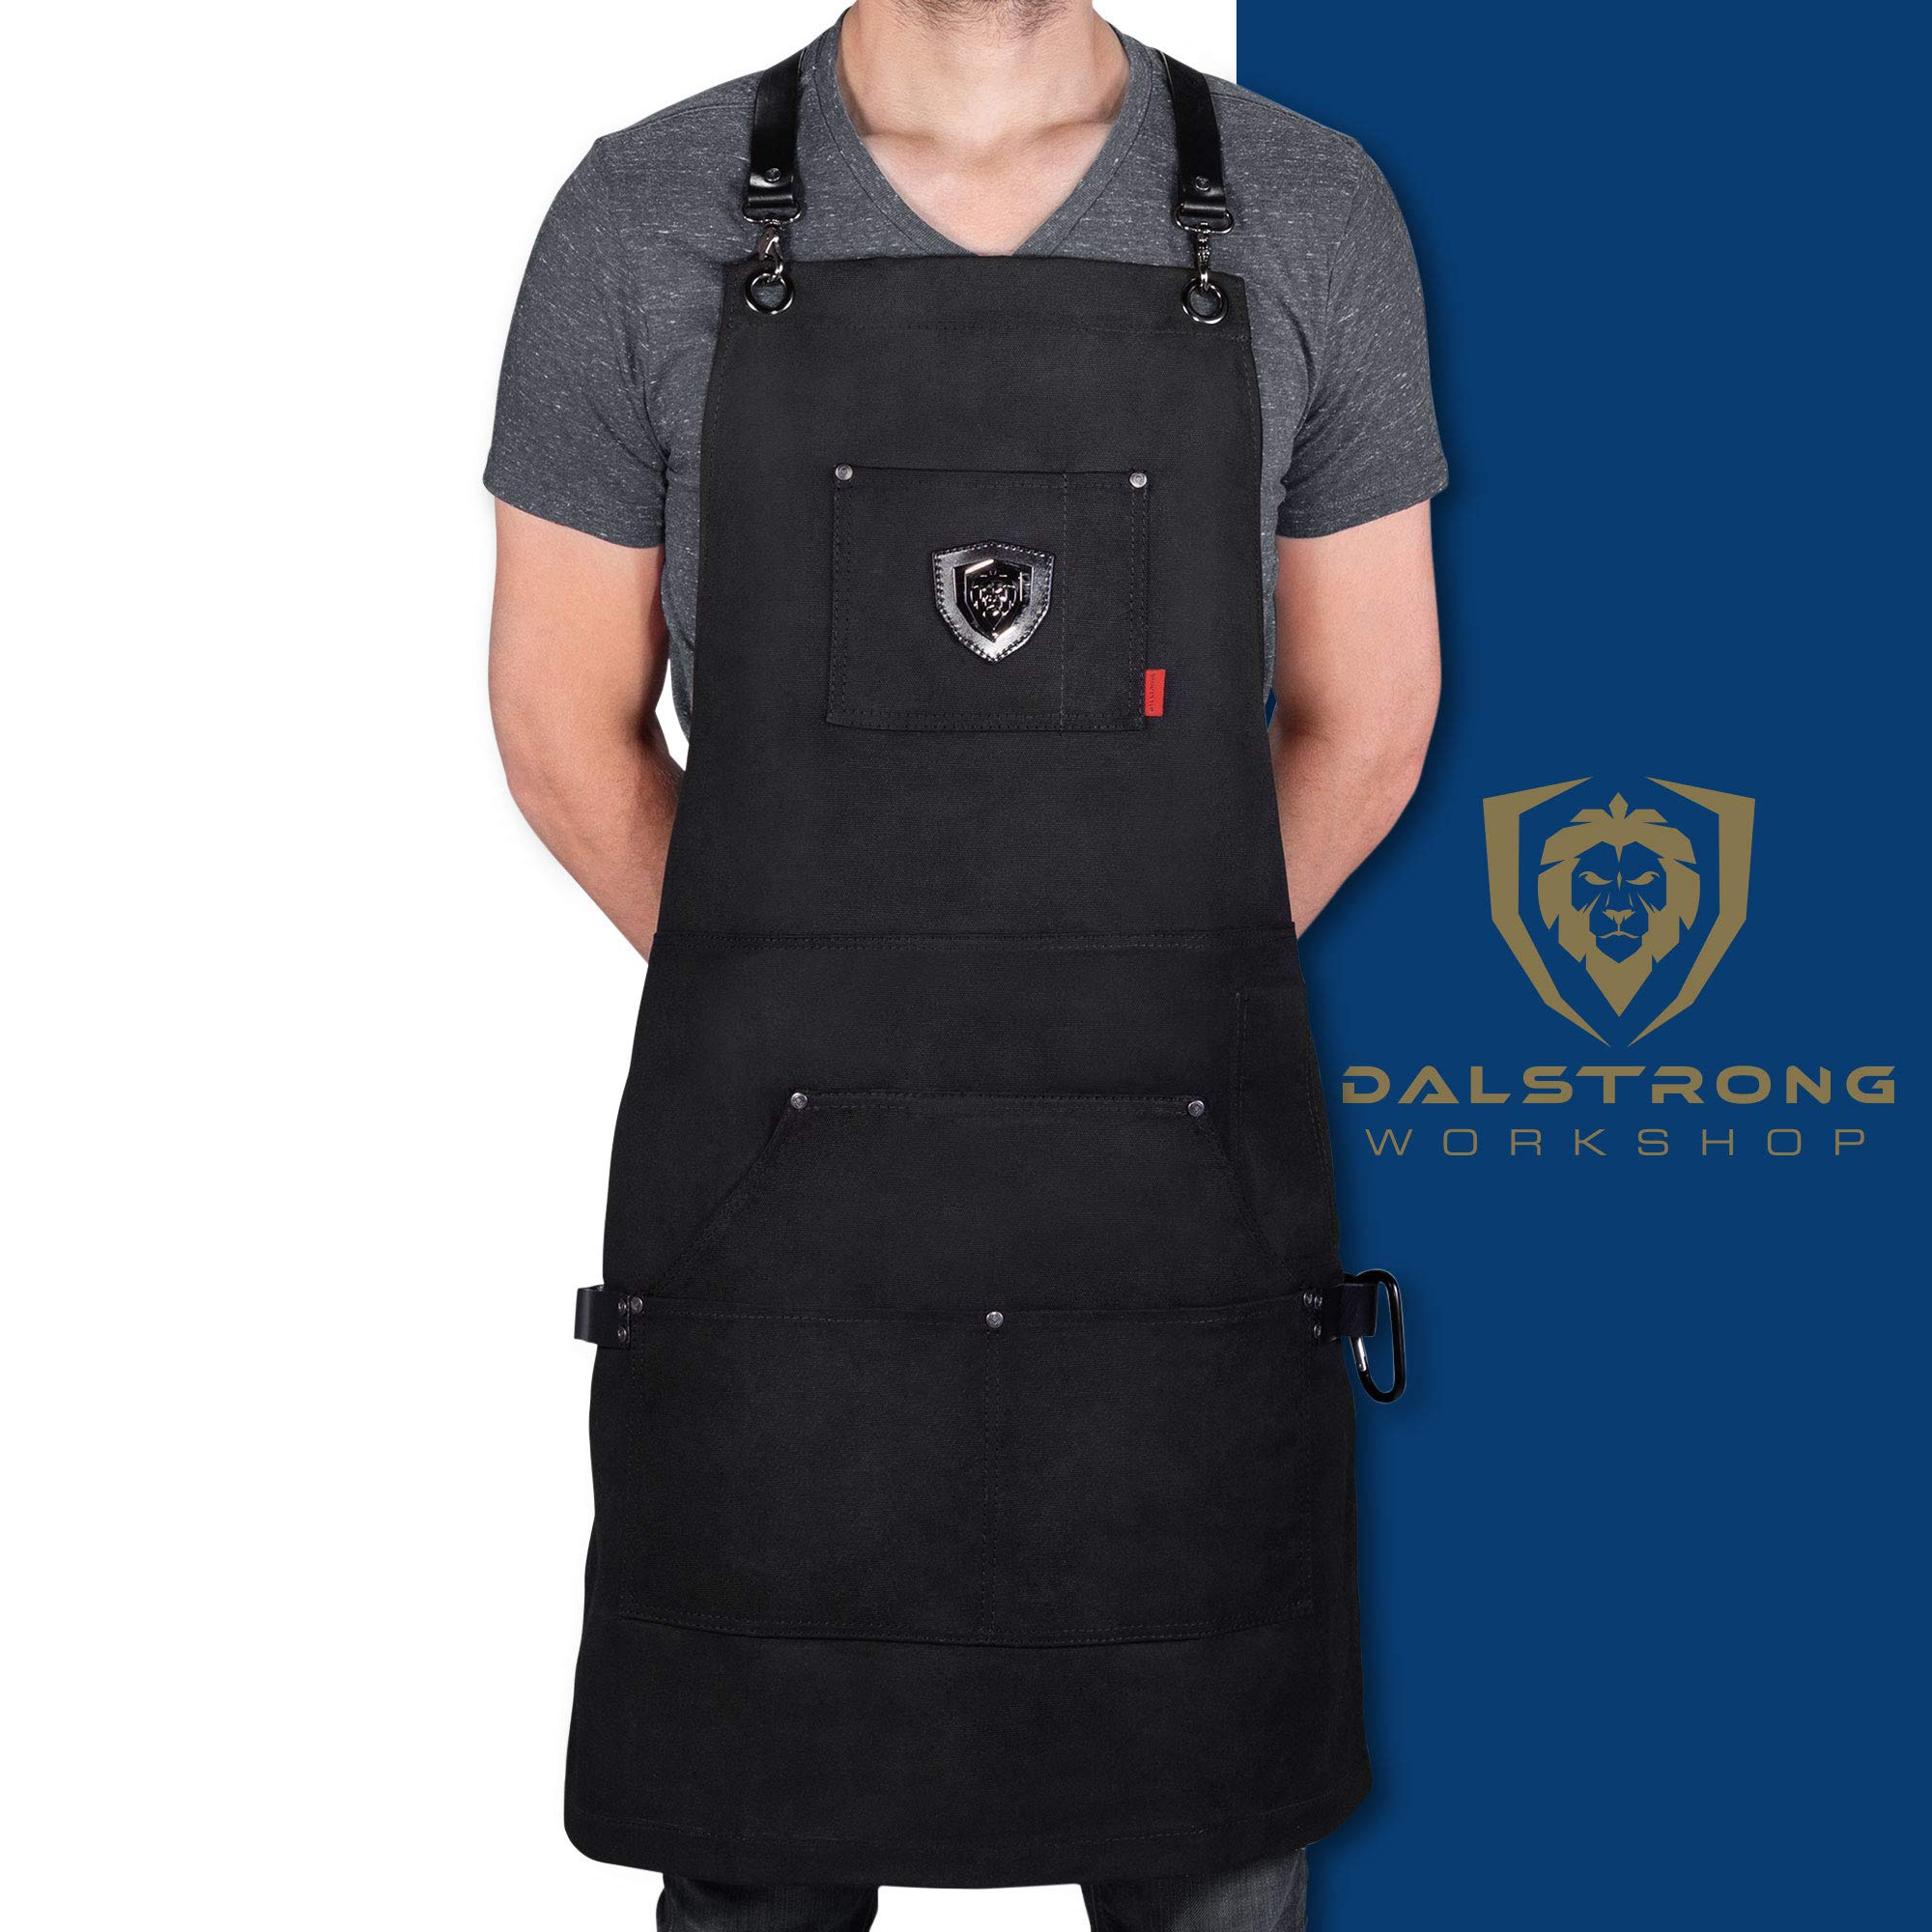 Dalstrong Professional Chef's Kitchen Apron - Sous Team 6'' - Heavy Duty Waxed Canvas - 5 Storage Pockets + Towel & Tong Loop - Liquid Repellent Coating - Genuine Leather Accents - Adjustable Straps by Dalstrong